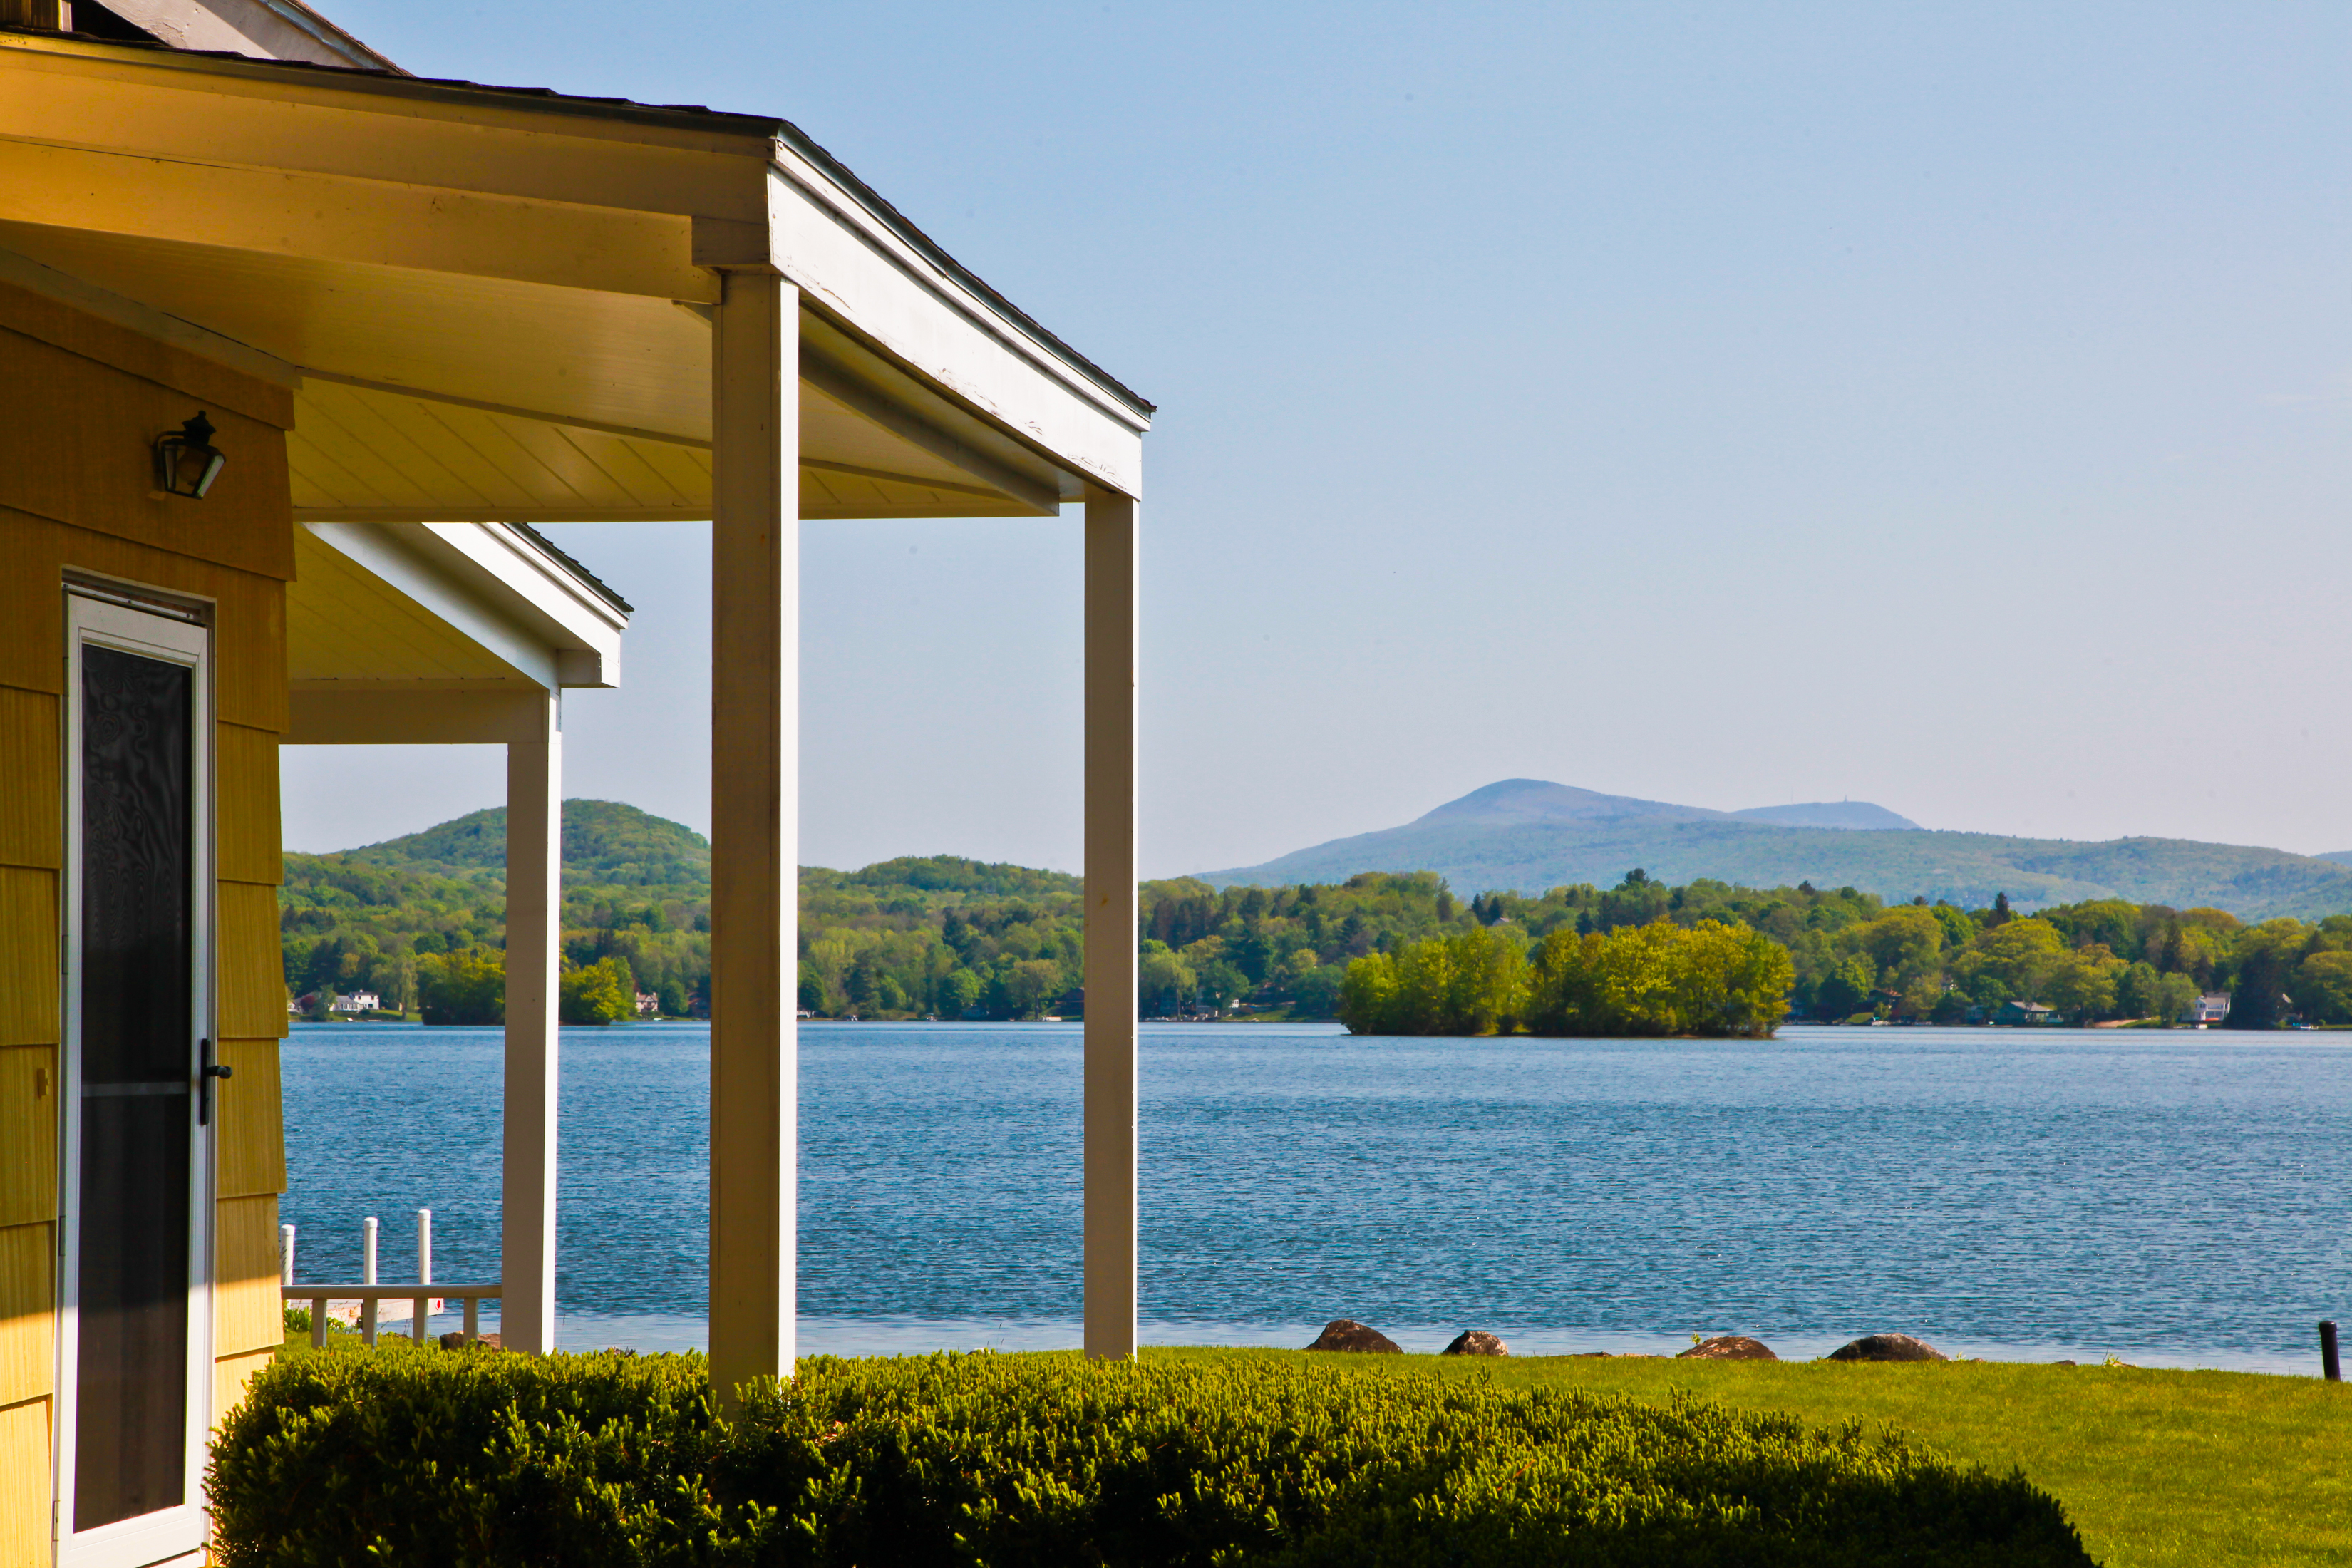 Single Family Home for Sale at Prime Four Season Waterfront Home on the South Coast of Pontoosuc Lake with view 16 Waubeek Rd Pittsfield, Massachusetts 01201 United States